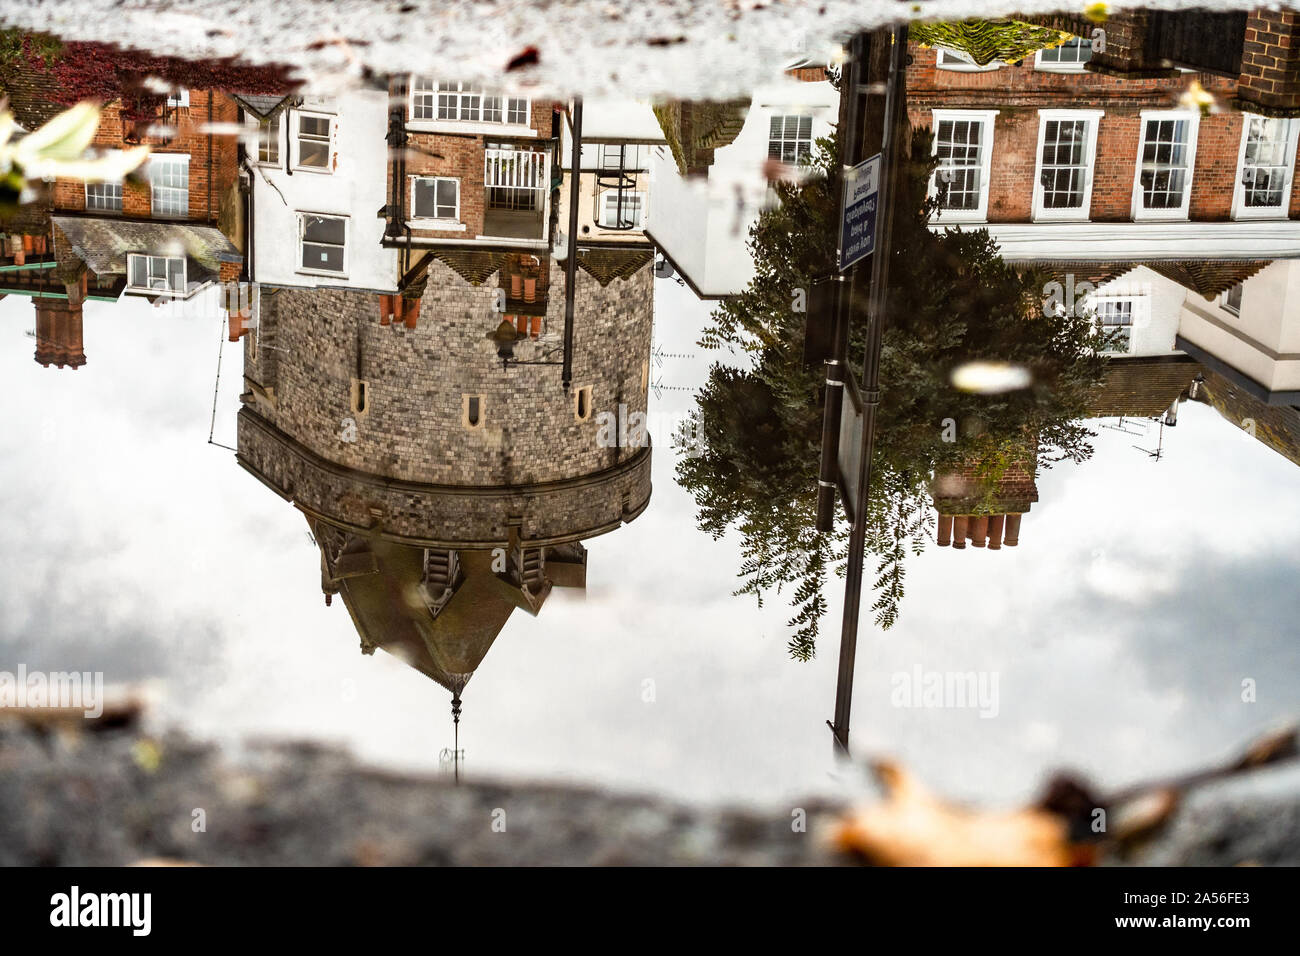 reflections-of-buildings-including-windsor-castle-in-a-puddle-on-the-floor-2A56FE3.jpg